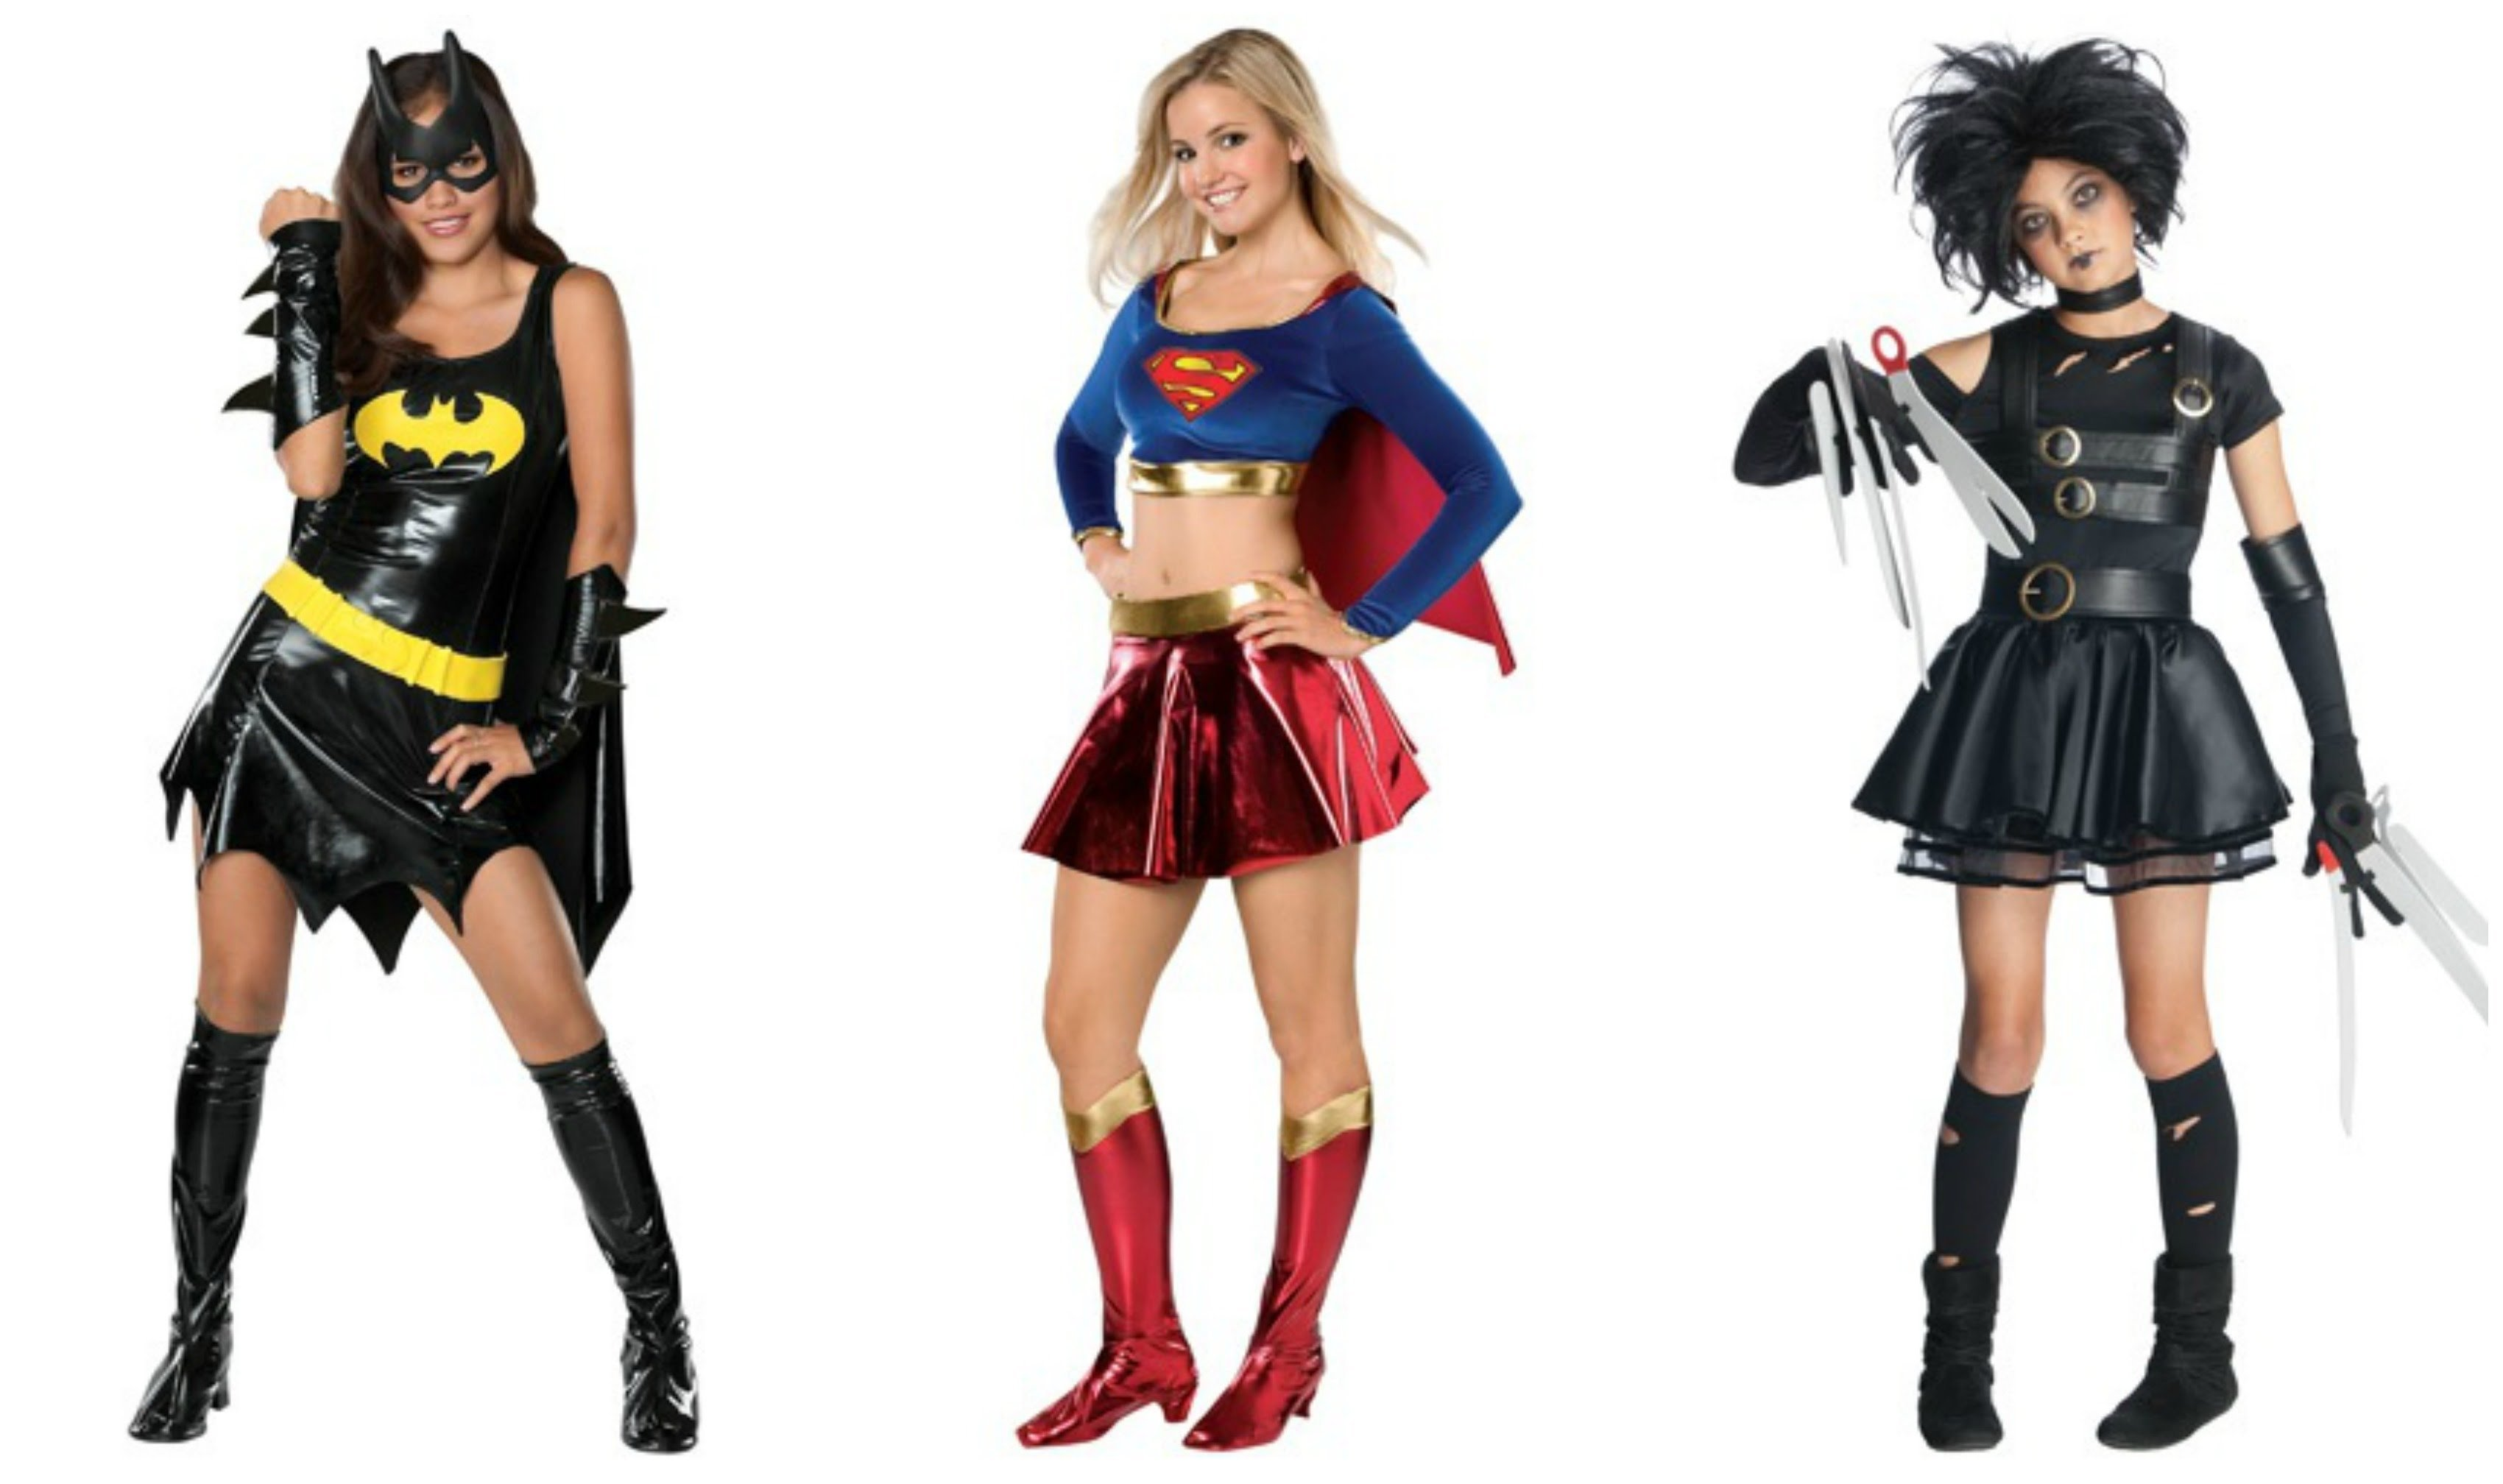 10 Perfect Cute Teen Halloween Costume Ideas halloween costume ideas for teens girls youtube halloween costumes 2021